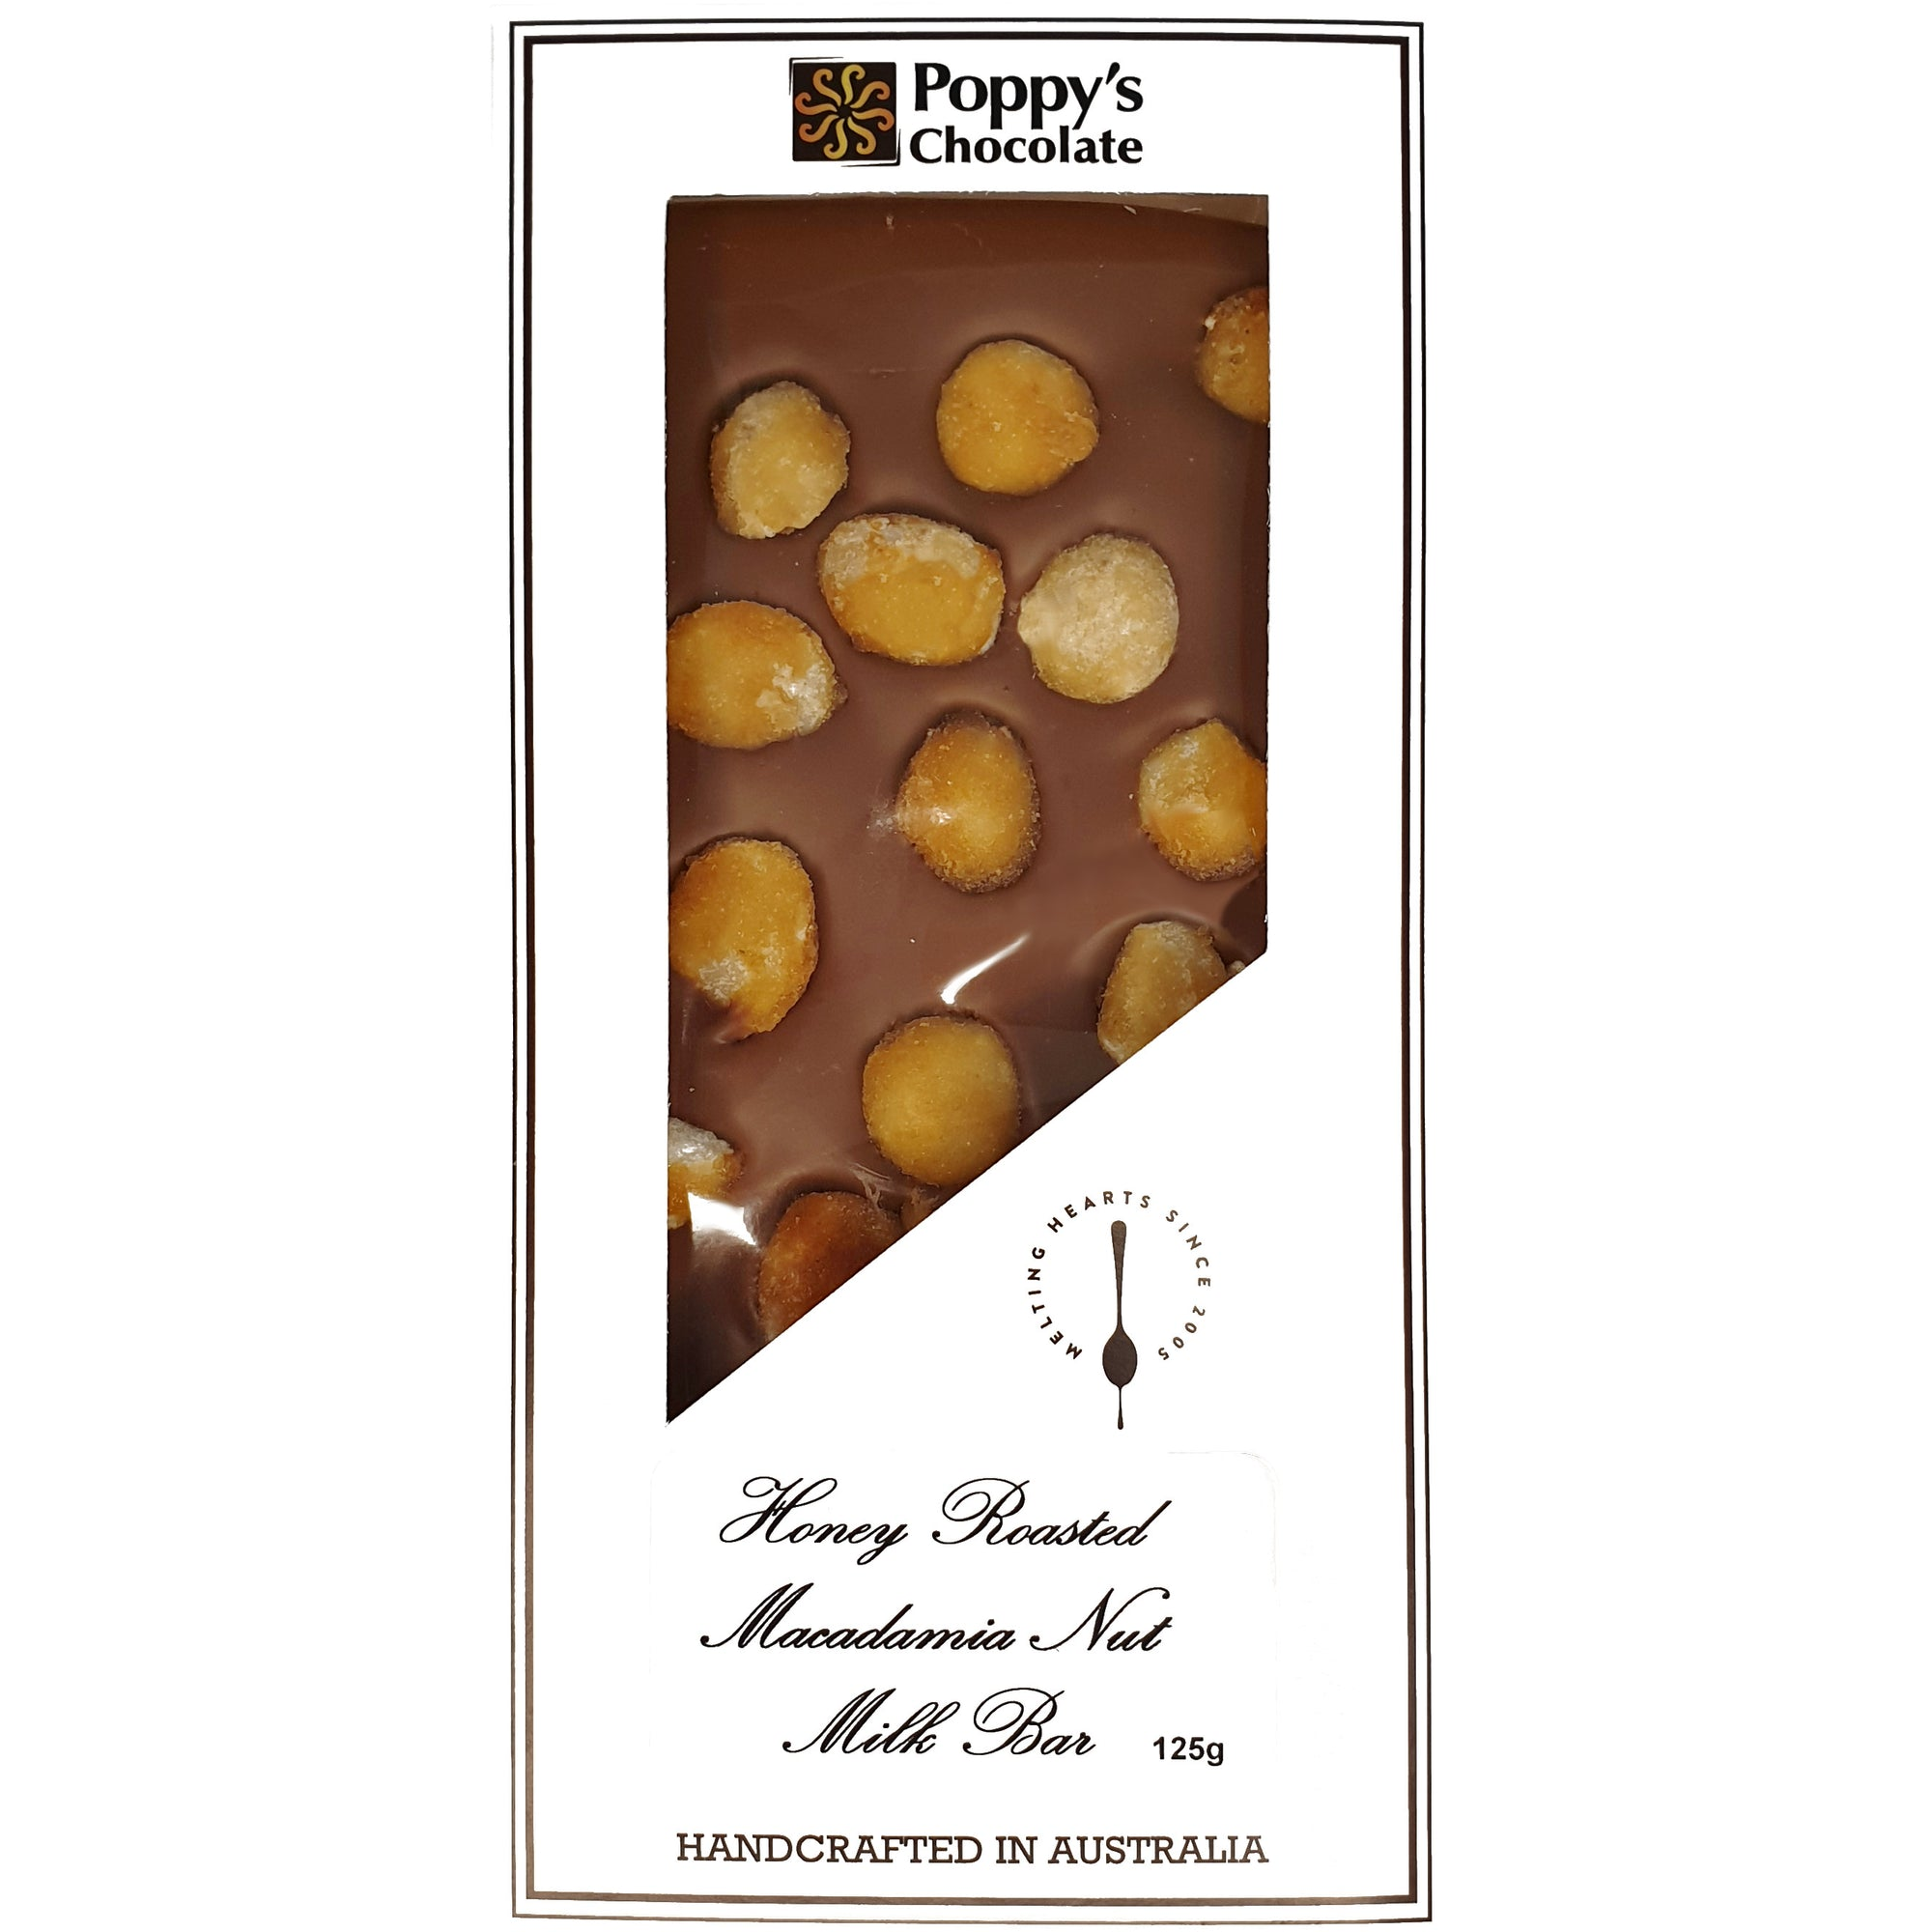 Honey Roasted Macadamias and Milk Chocolate Block 125g